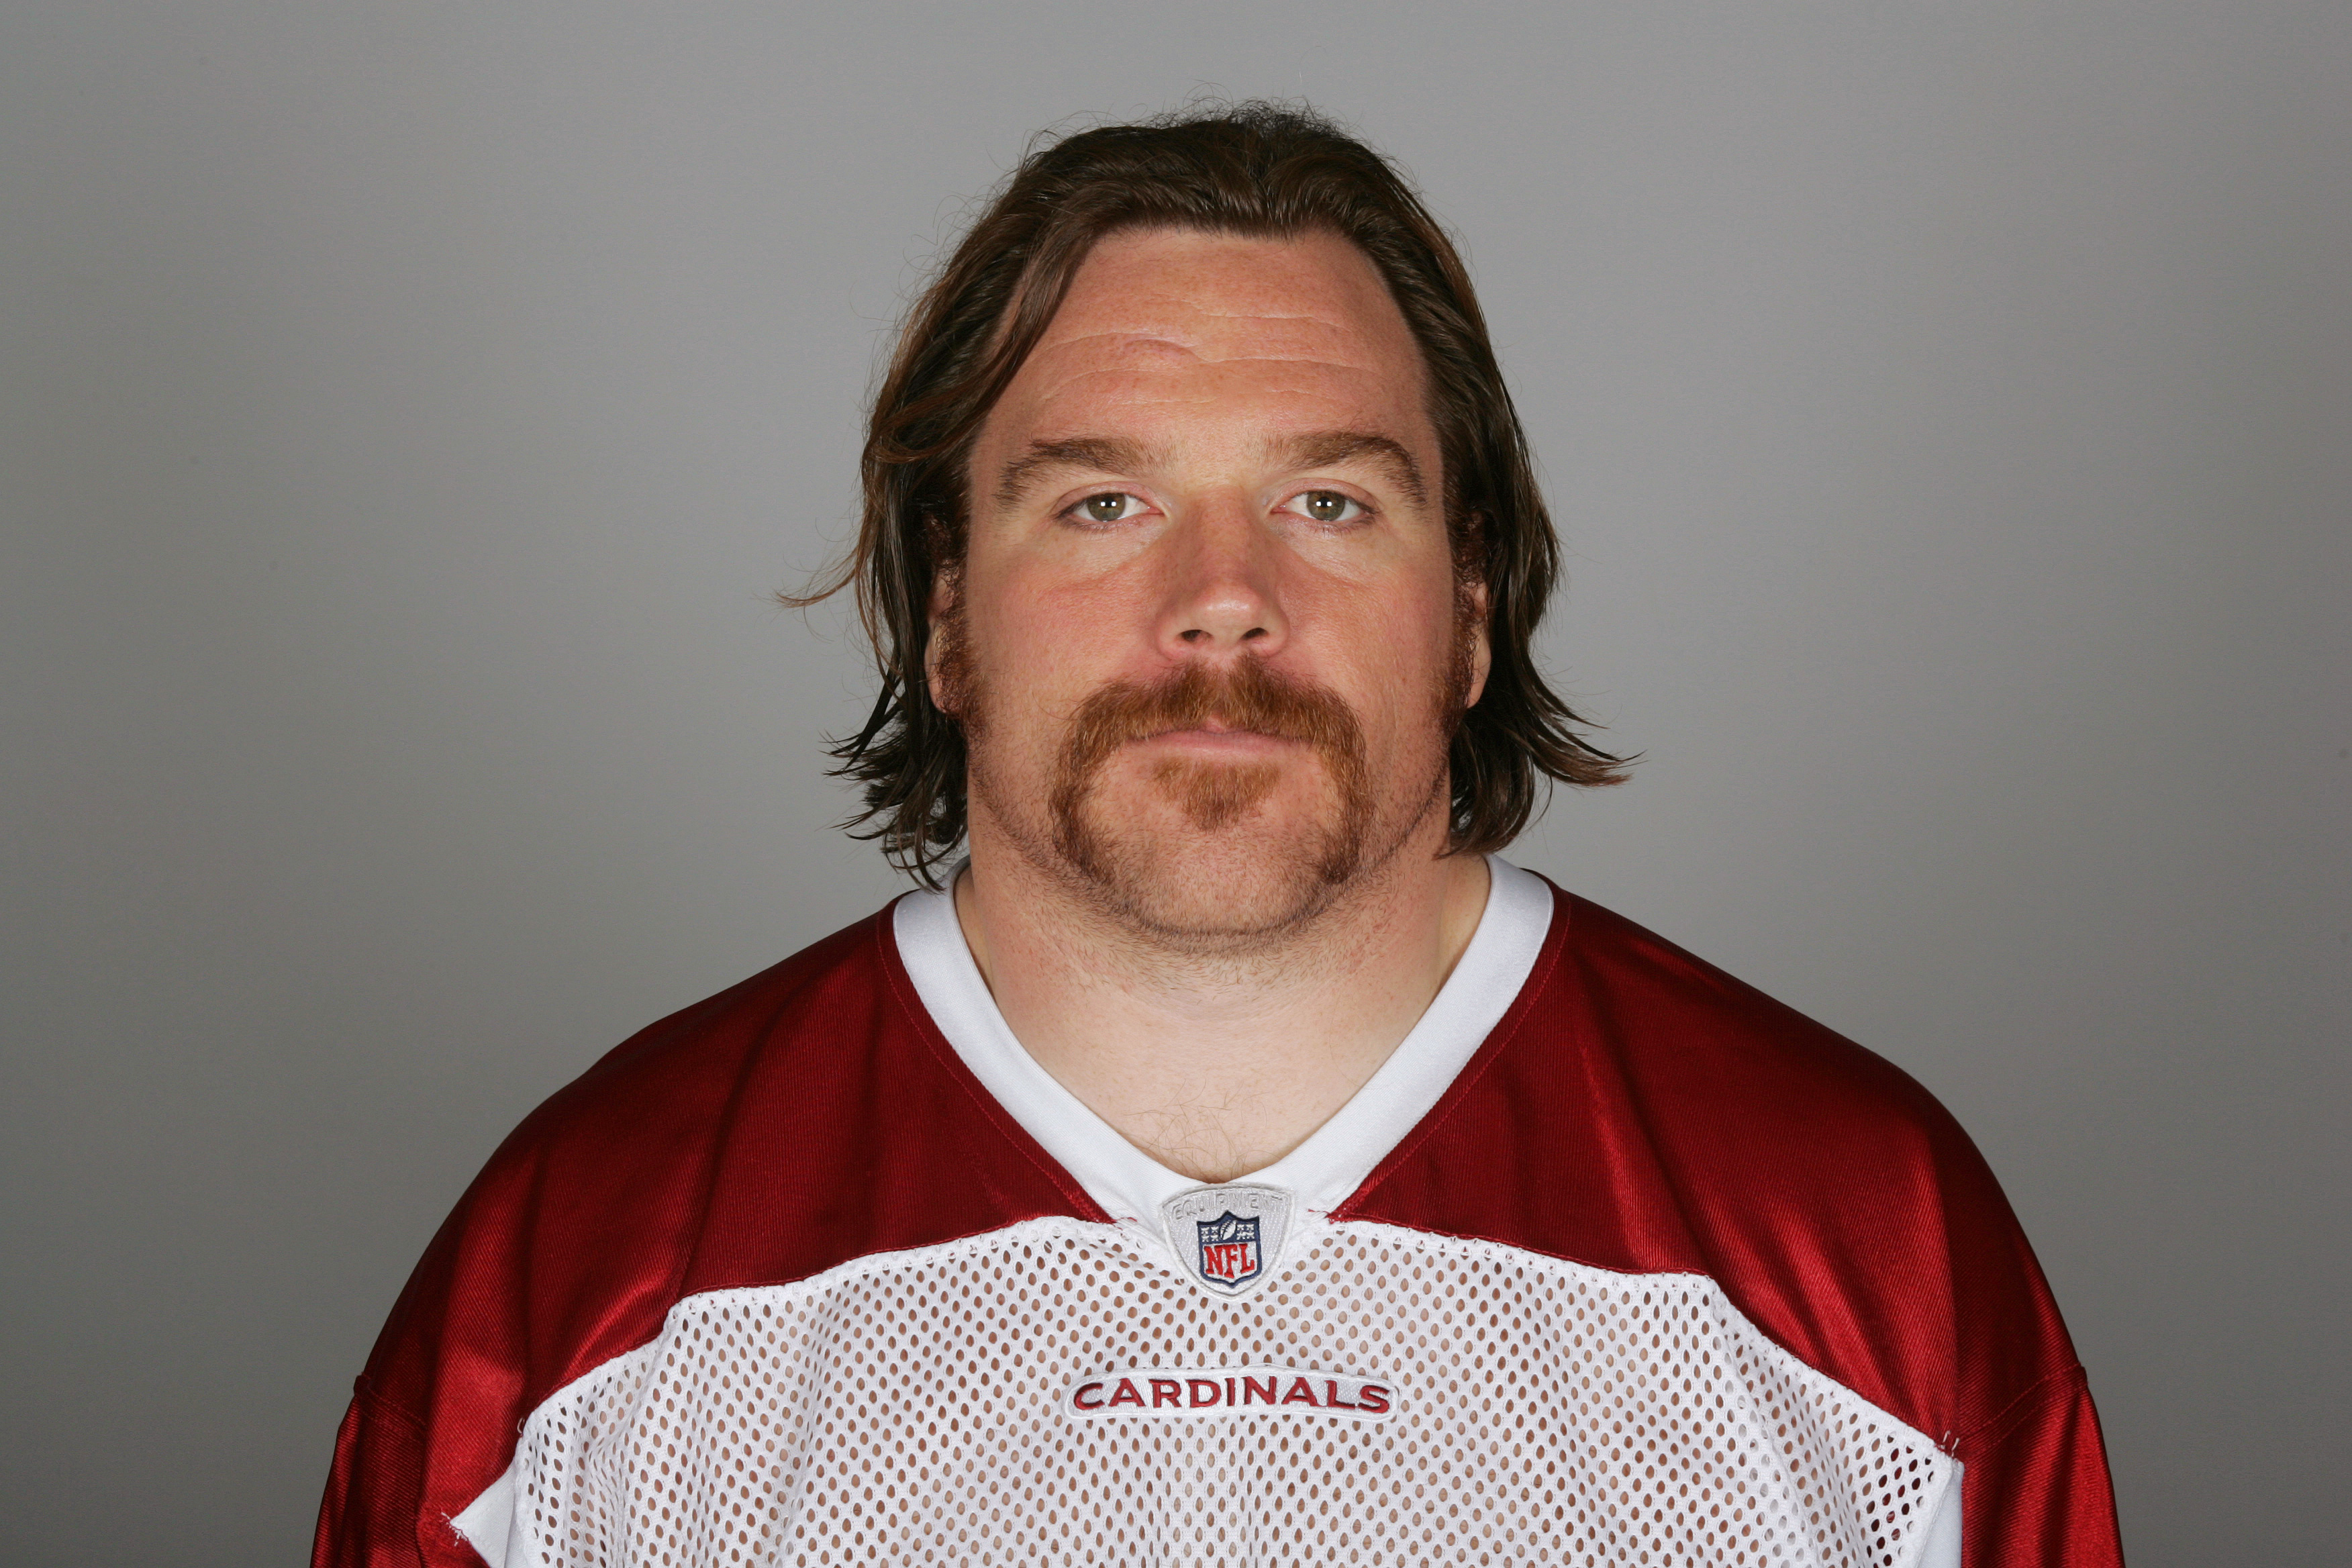 TEMPE, AZ - CIRCA 2010: In this handout image provided by the NFL,  Alan Faneca of the Arizona Cardinals poses for his NFL headshot circa 2010 in Tempe, Arizona. (Photo by NFL via Getty Images)